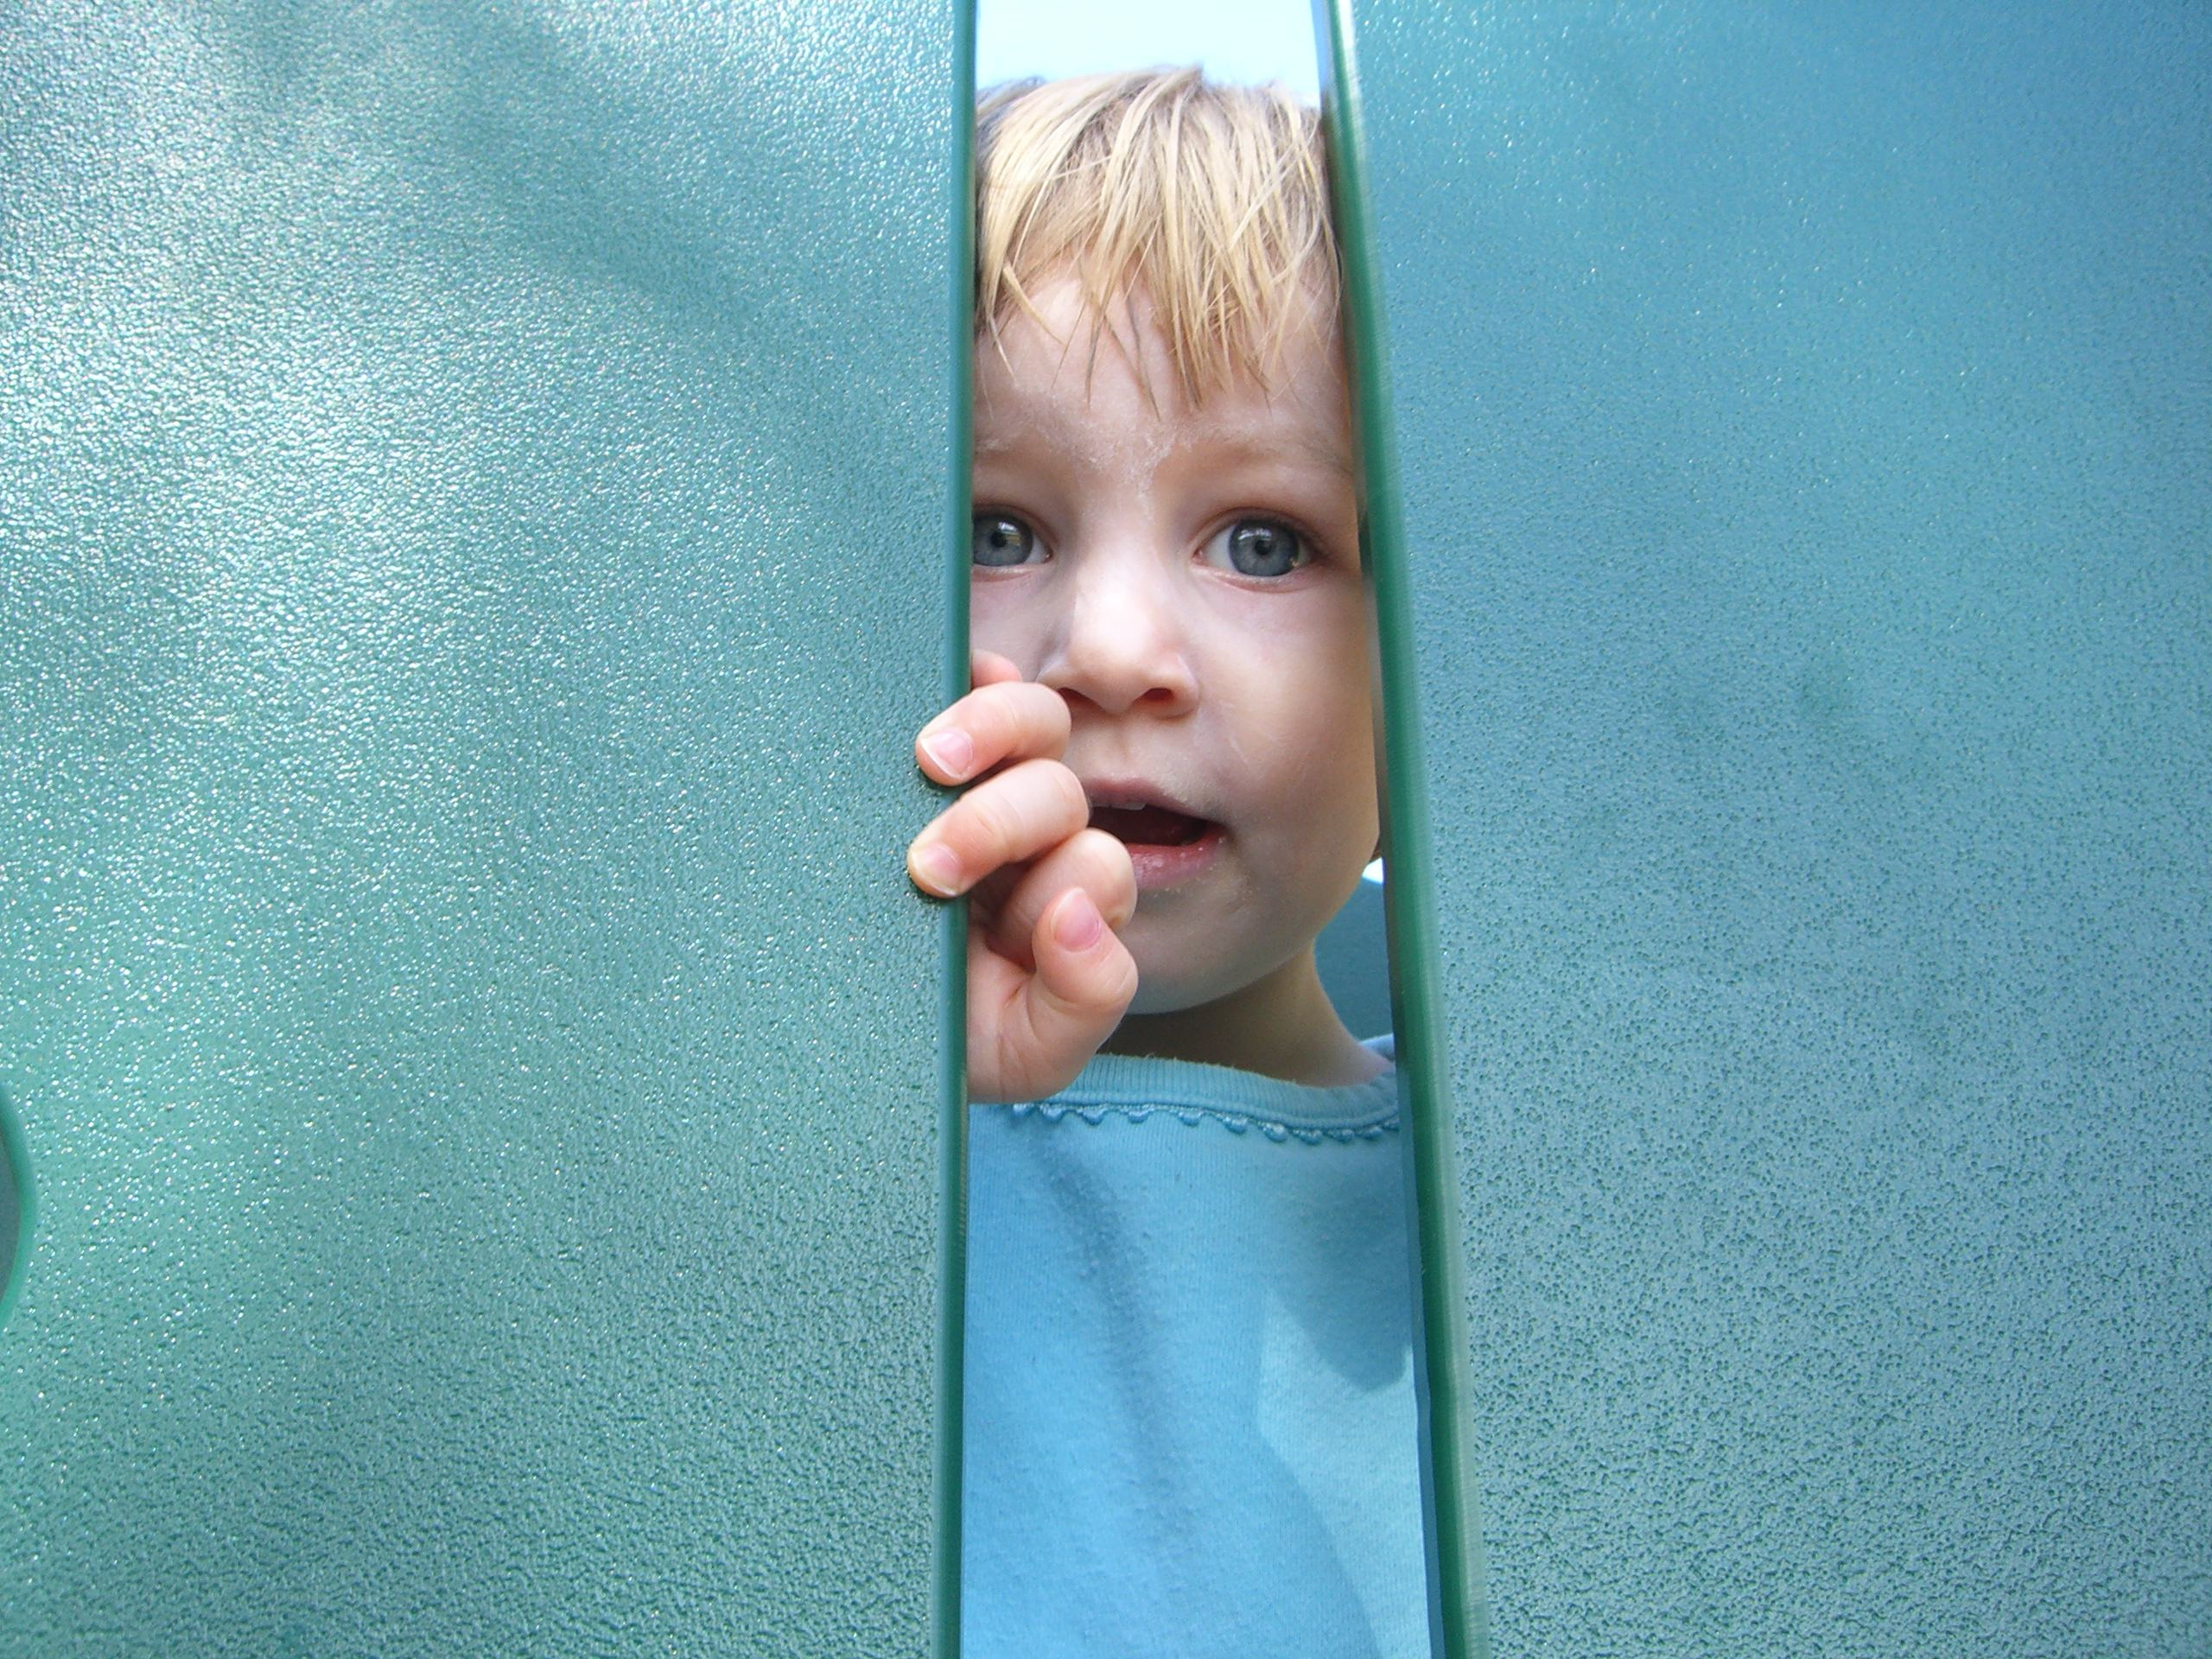 Peeking out through a gap in the playground equipment, March 2007